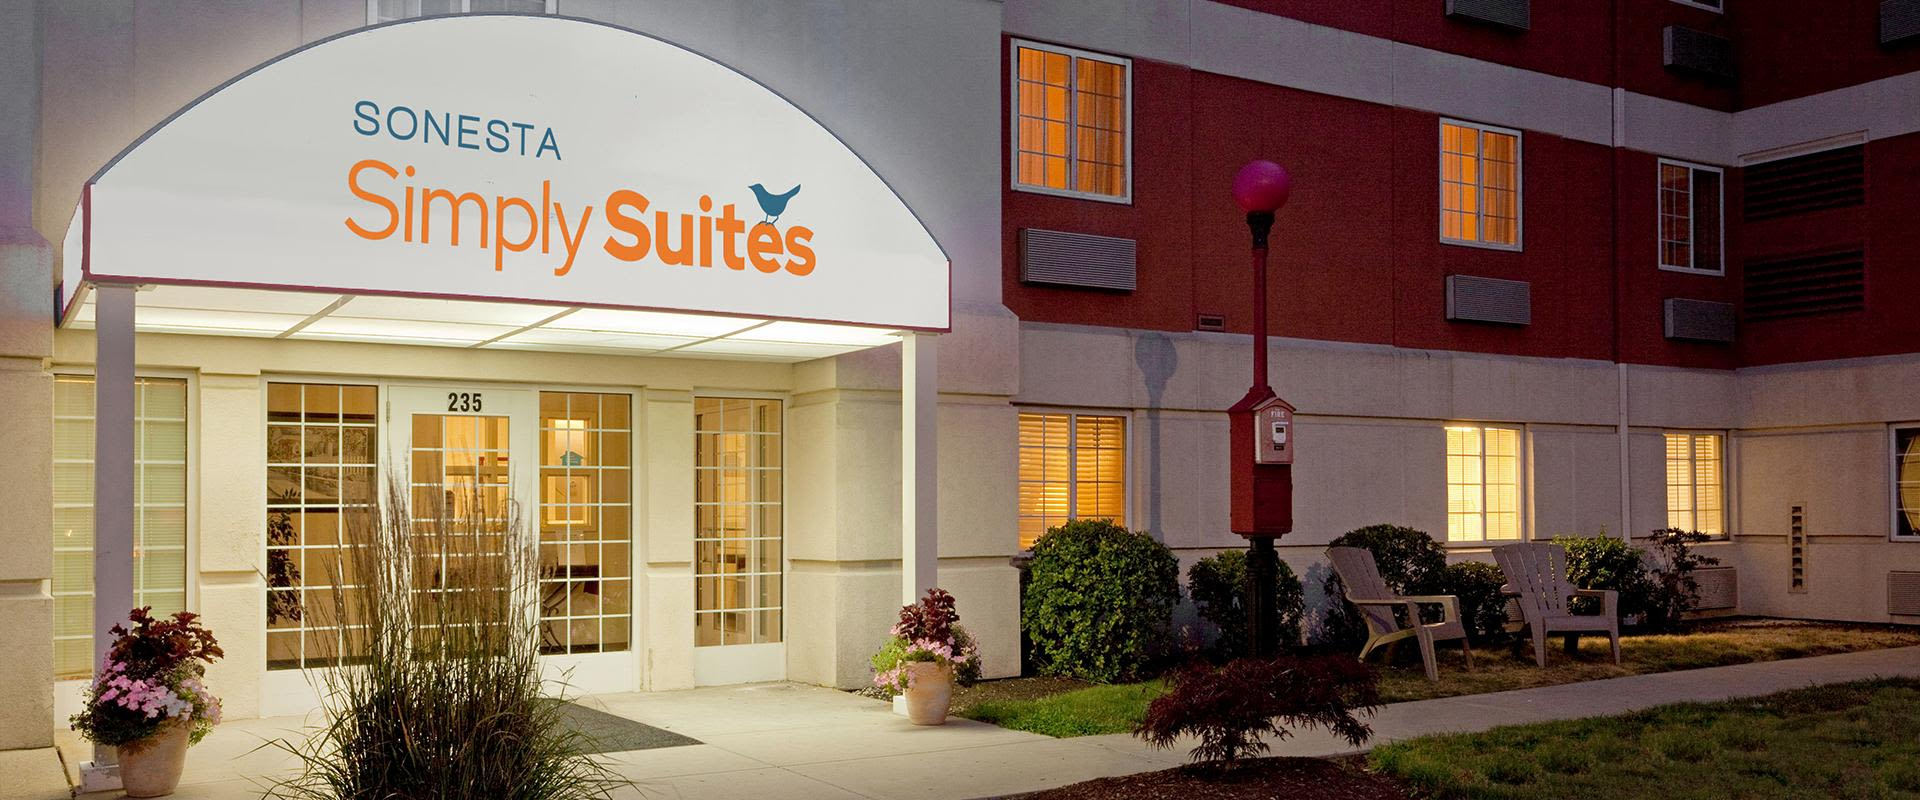 Sonesta Simply Suites Boston Braintree Hotel Exterior Entrance